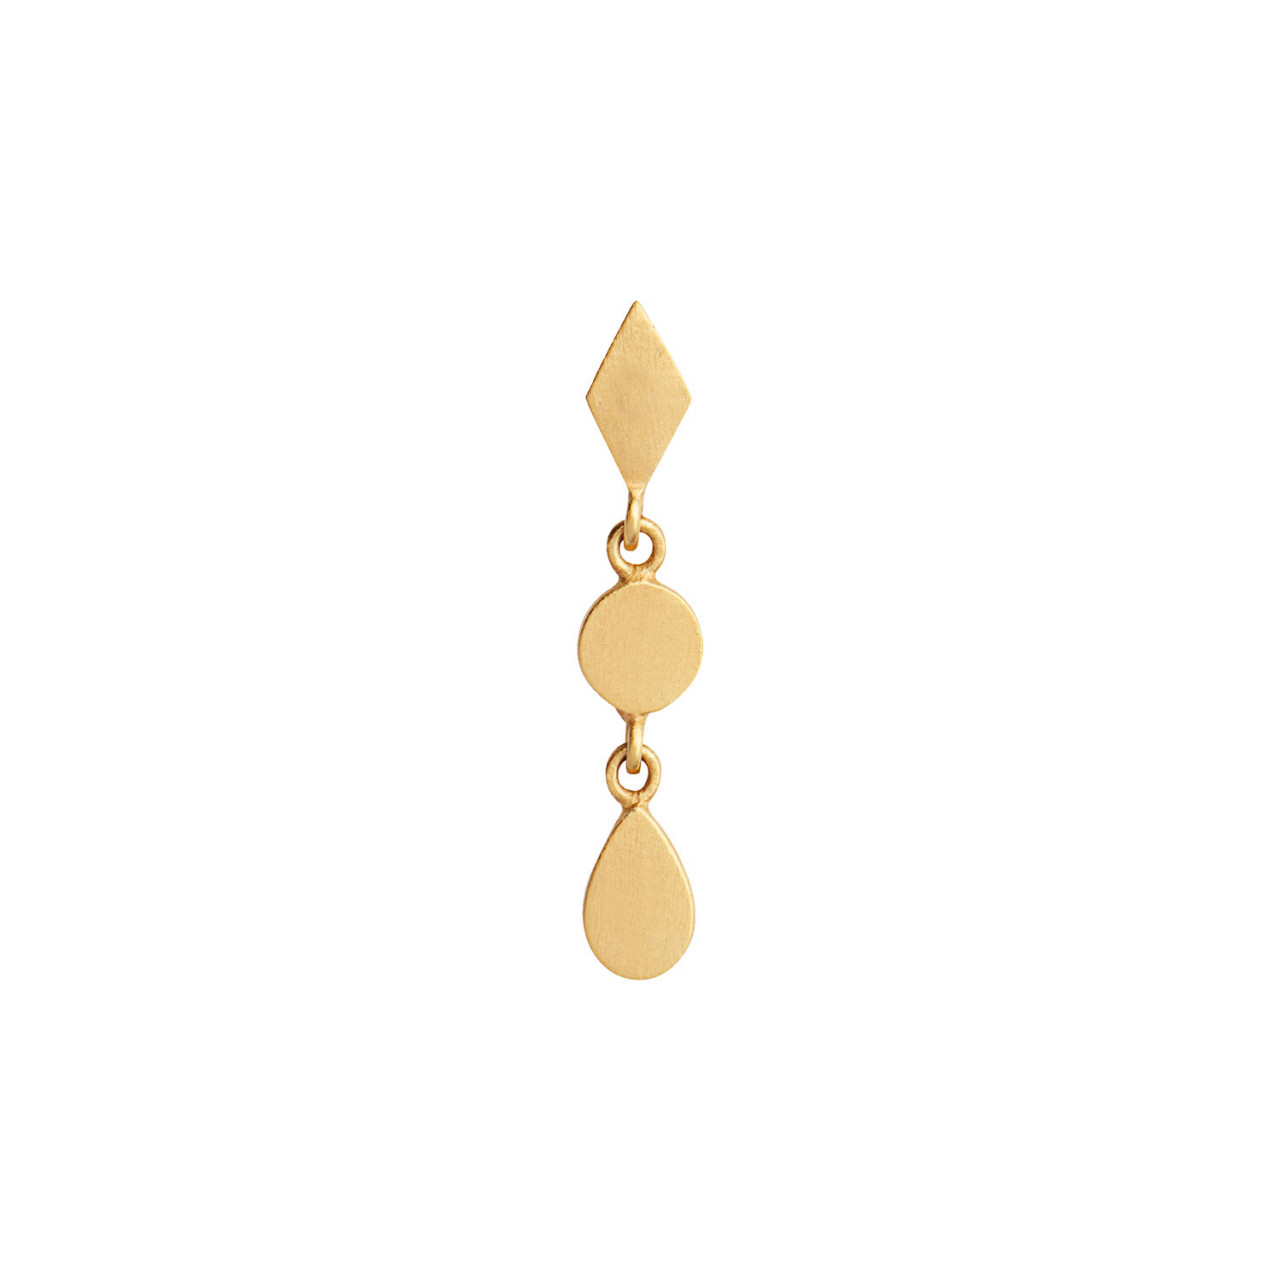 Dangling Petit Silhouettes - Gold w/Harlekin, Coin and Teardrop